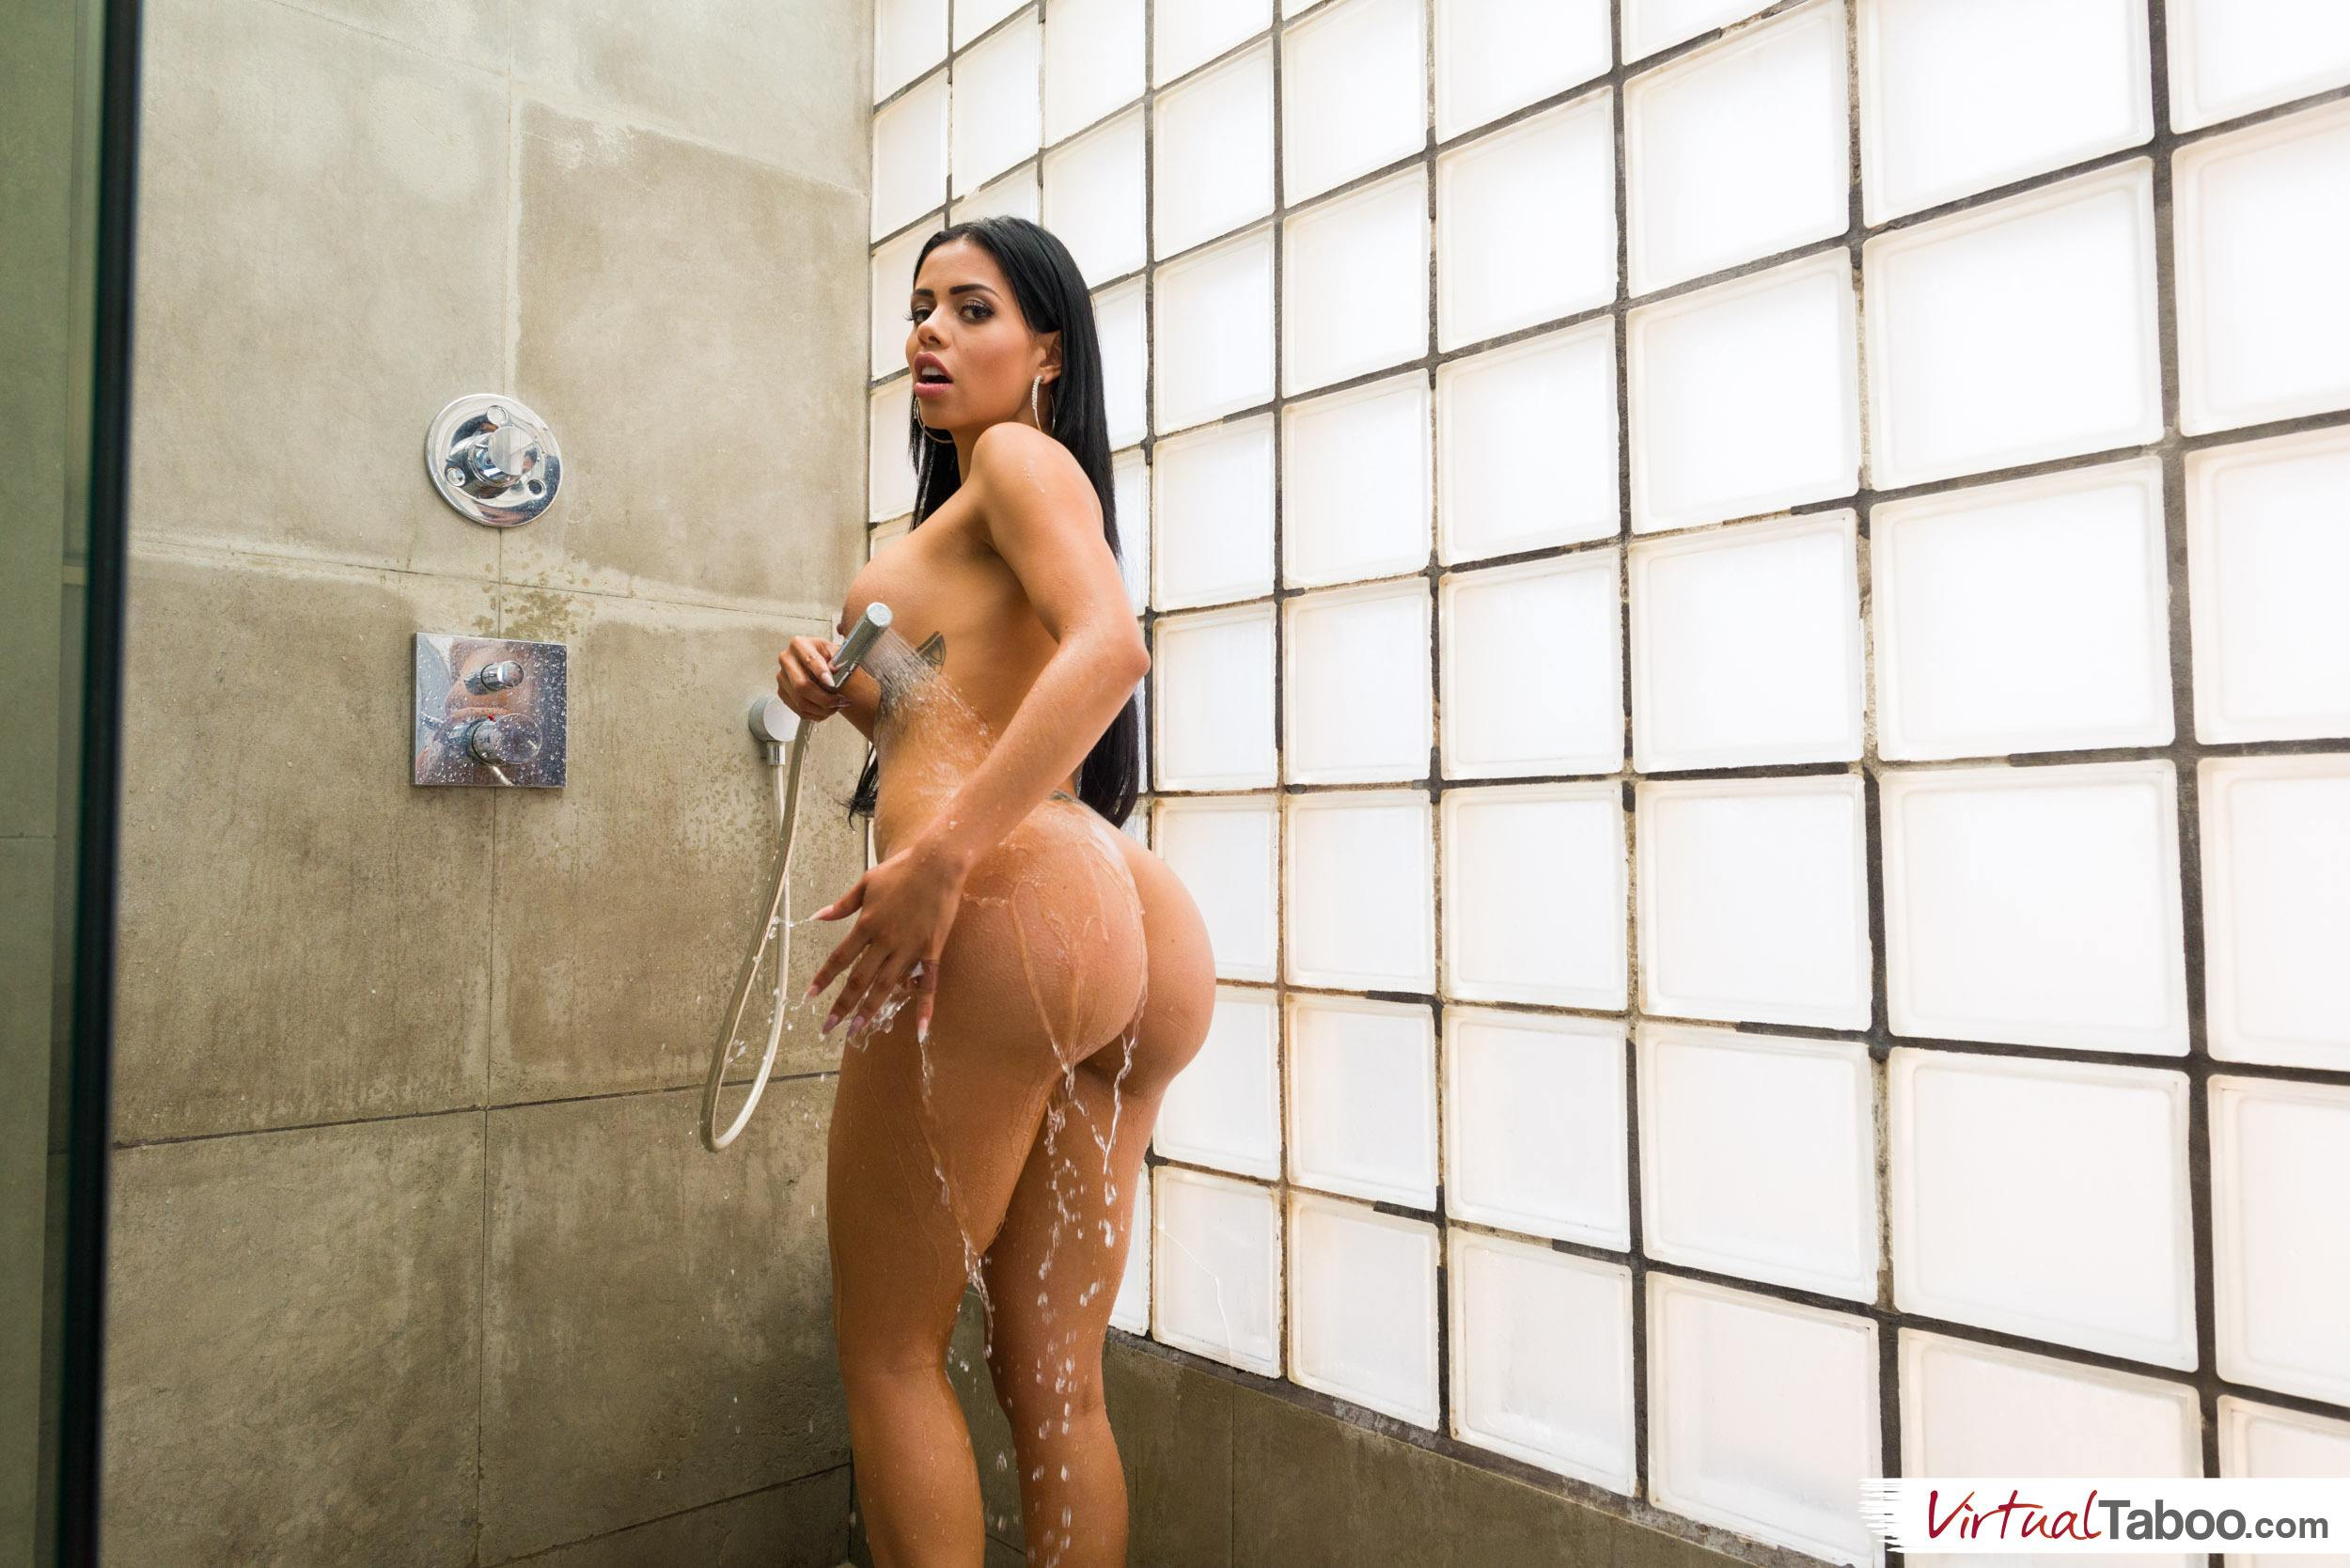 lopez-shower-video-and-porn-sex-and-dating